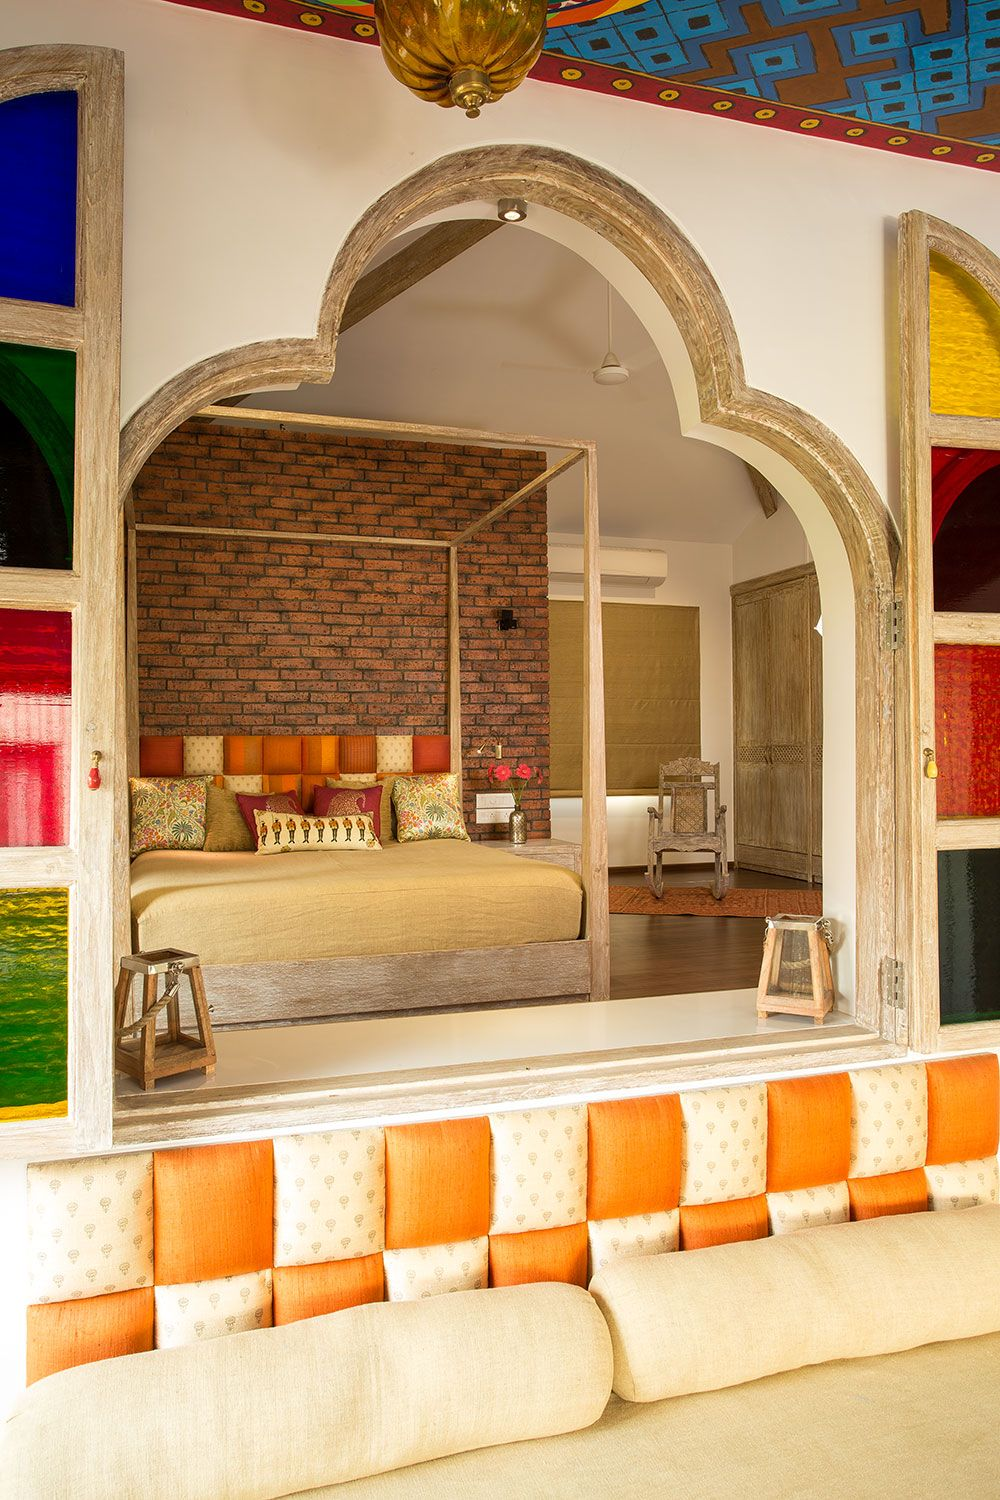 Interior Design Bedroom Traditional. Indian Heritage Interiors Meets New Age  Design   The Orange Lane